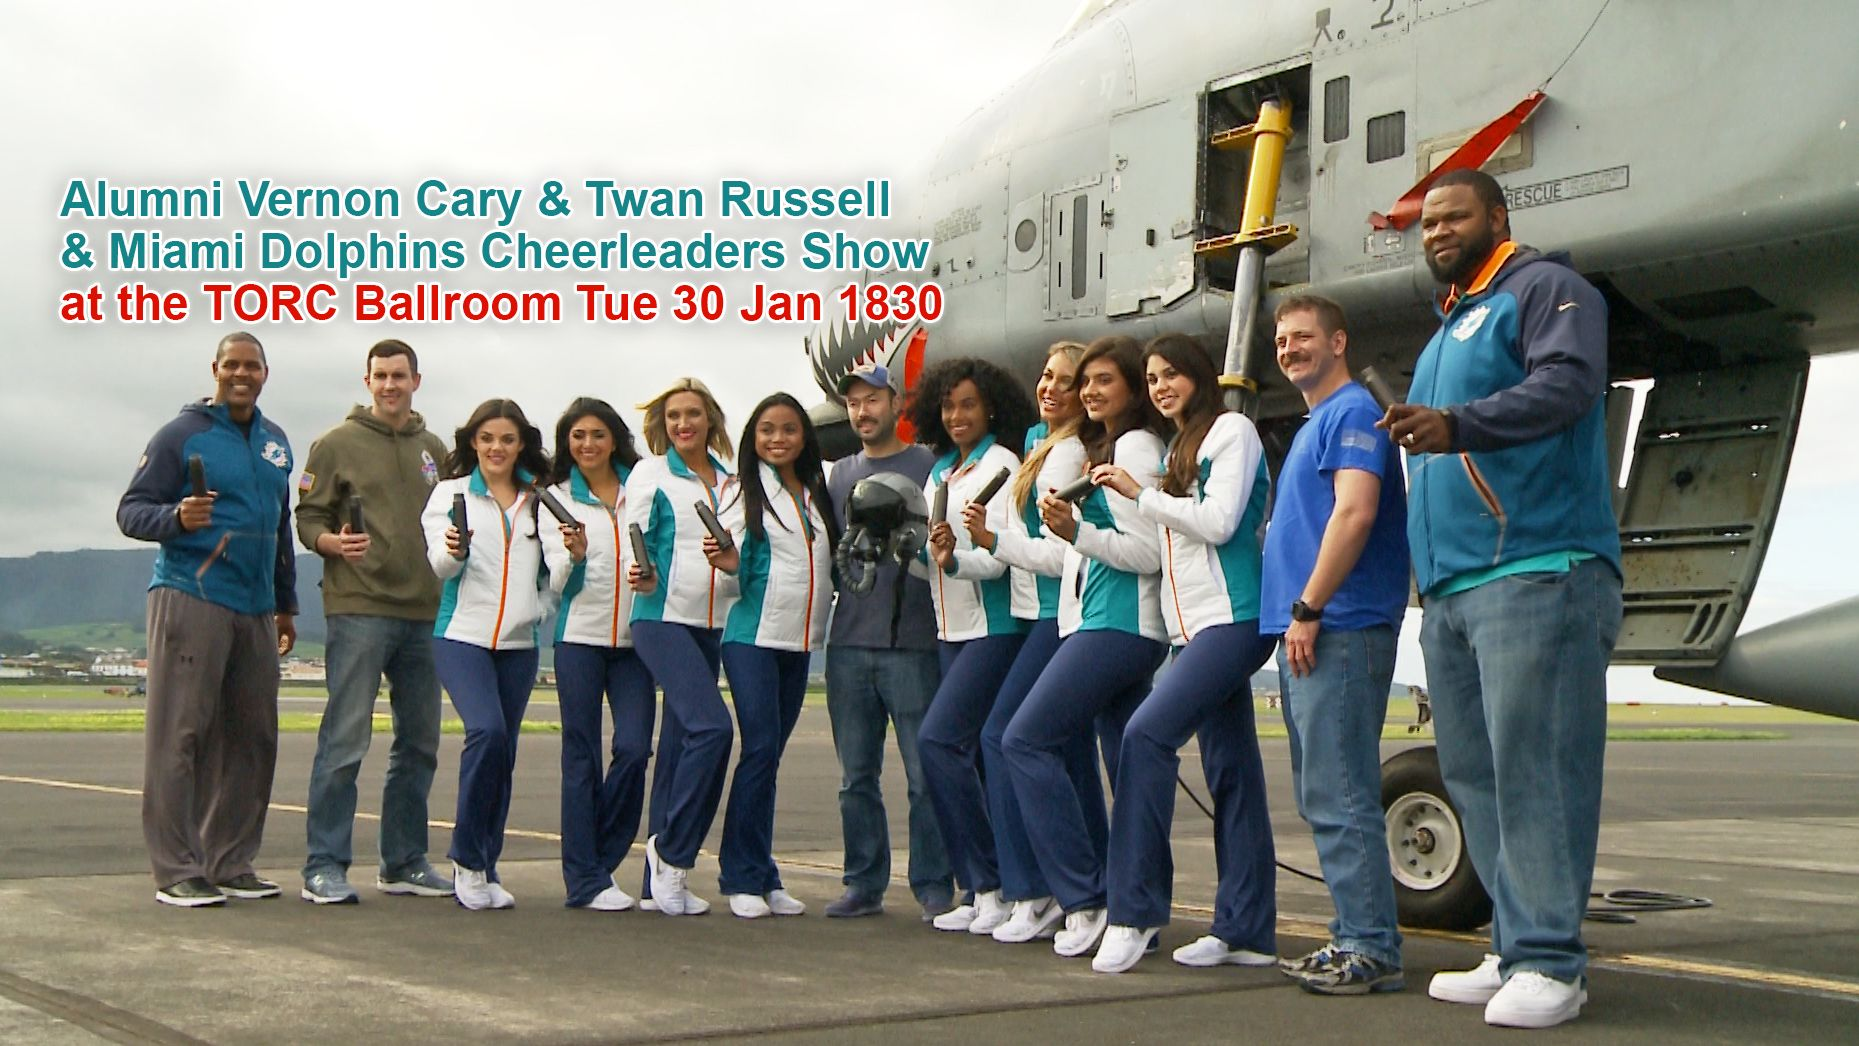 Alumni Vernon Cary & Twan Russell and Miami Dolphins Cheerleaders Show at the TORC Ballroom Tue 30 Jan 1900